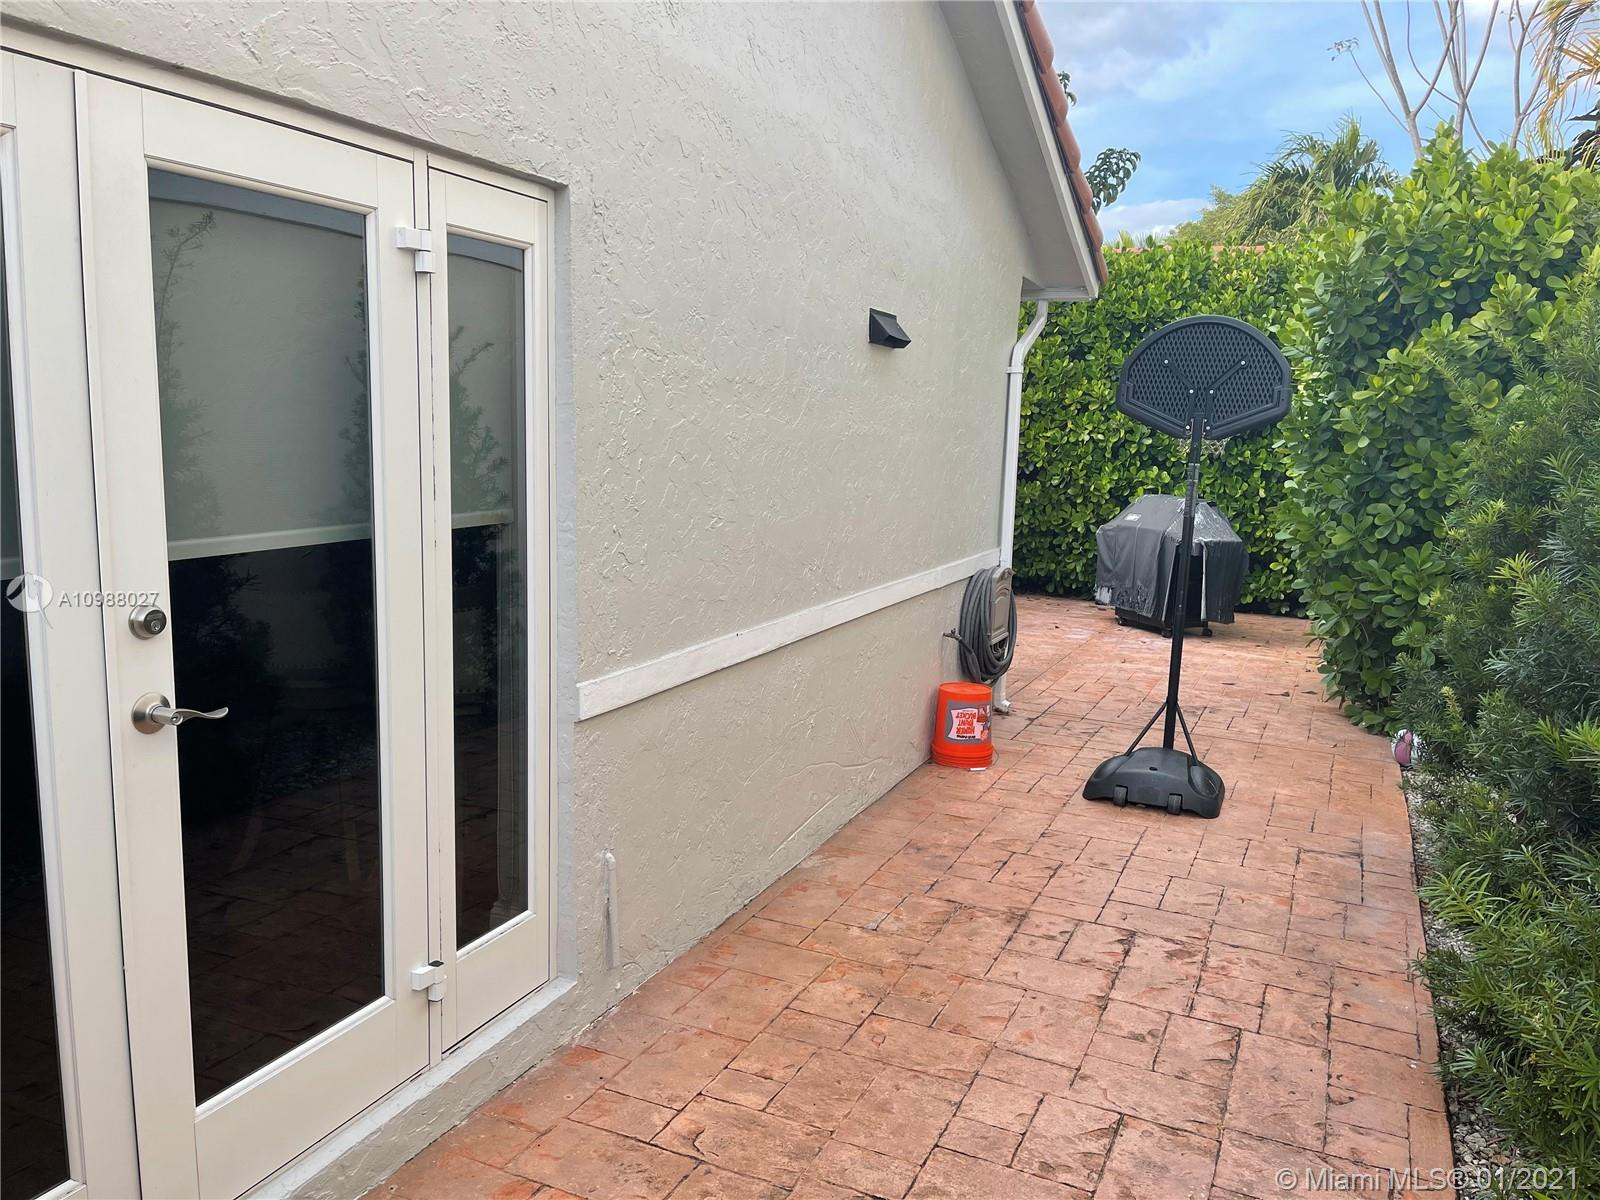 11307 SW 73rd Ln, Miami, Florida 33173, 3 Bedrooms Bedrooms, ,2 BathroomsBathrooms,Residential,For Sale,11307 SW 73rd Ln,A10988027